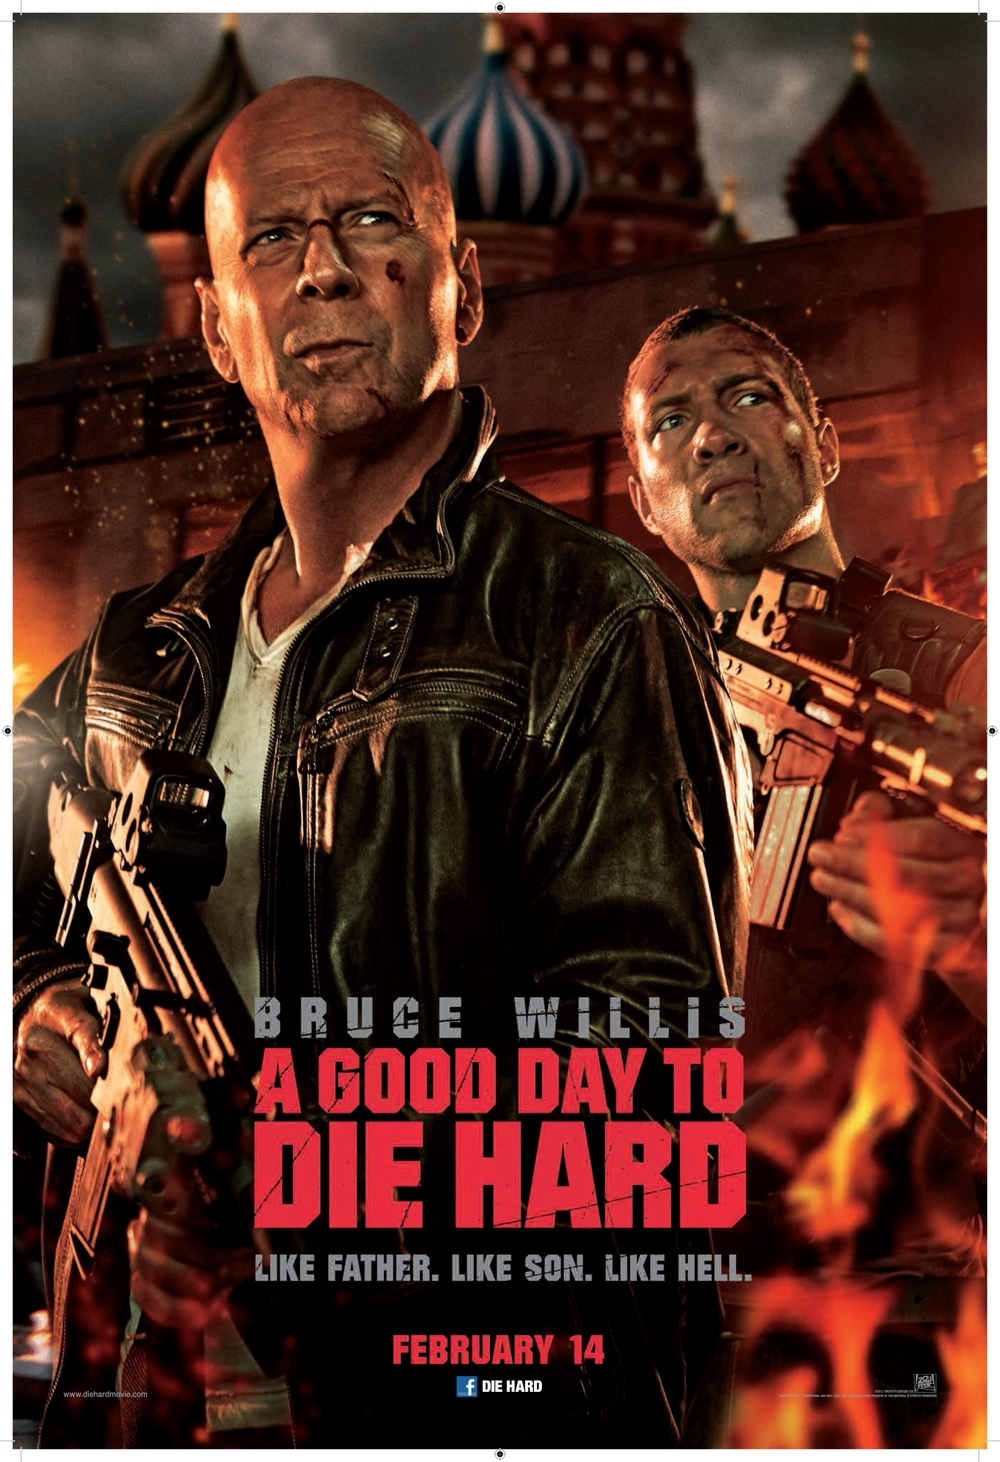 A Good Day To Die Hard (UK poster)